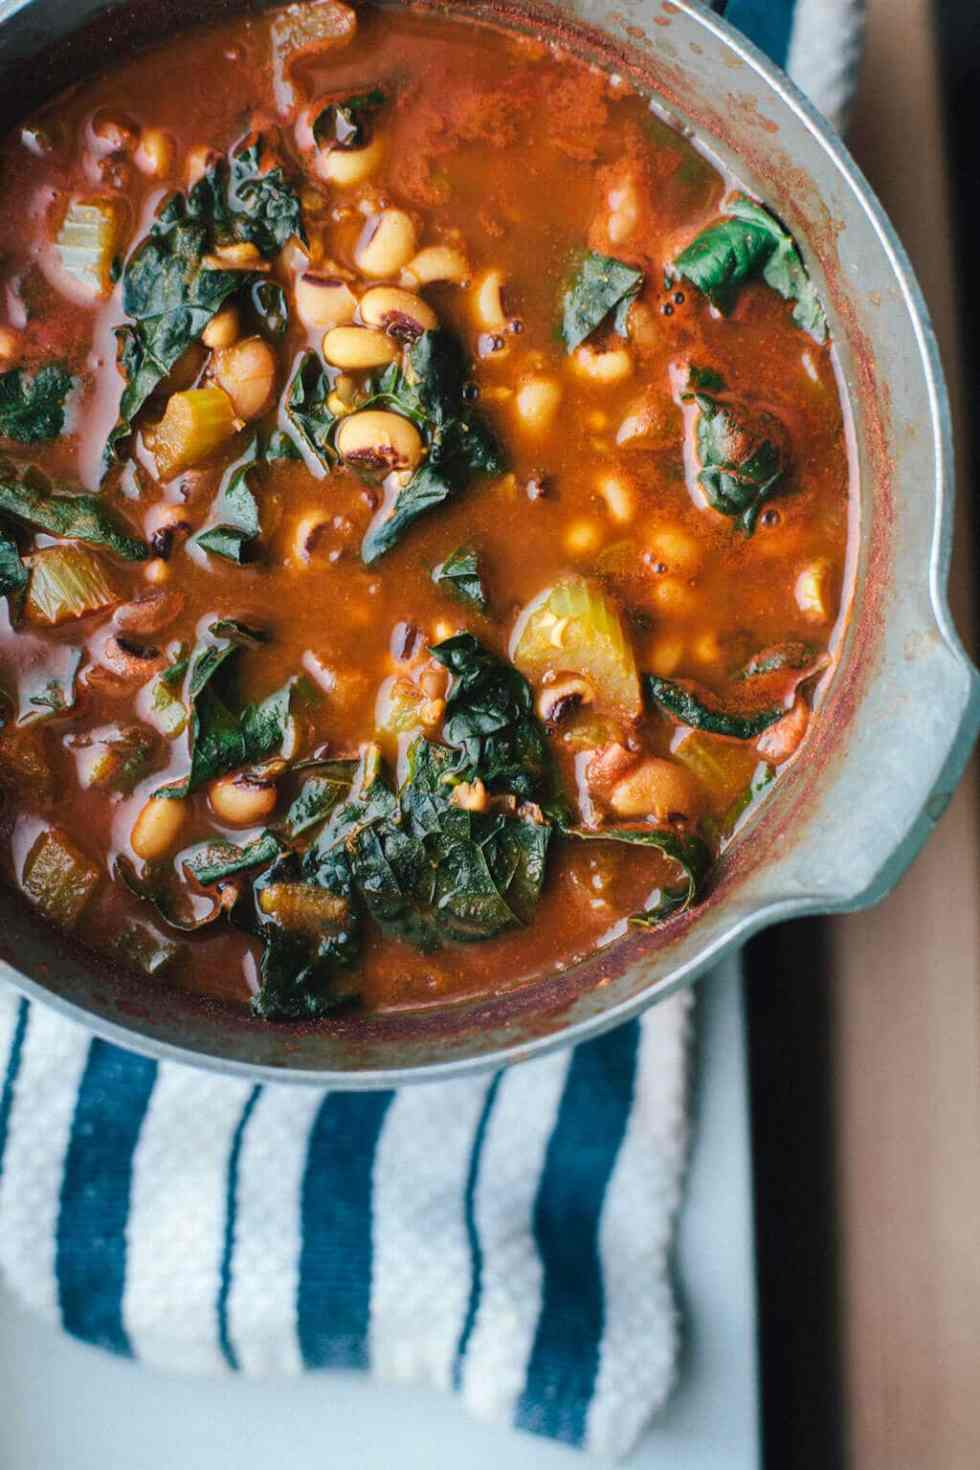 A Big Pot of Meatless Black Eyed Pea Soup with Kale and Black Eyed Peas Peaking Out of a Red Broth.